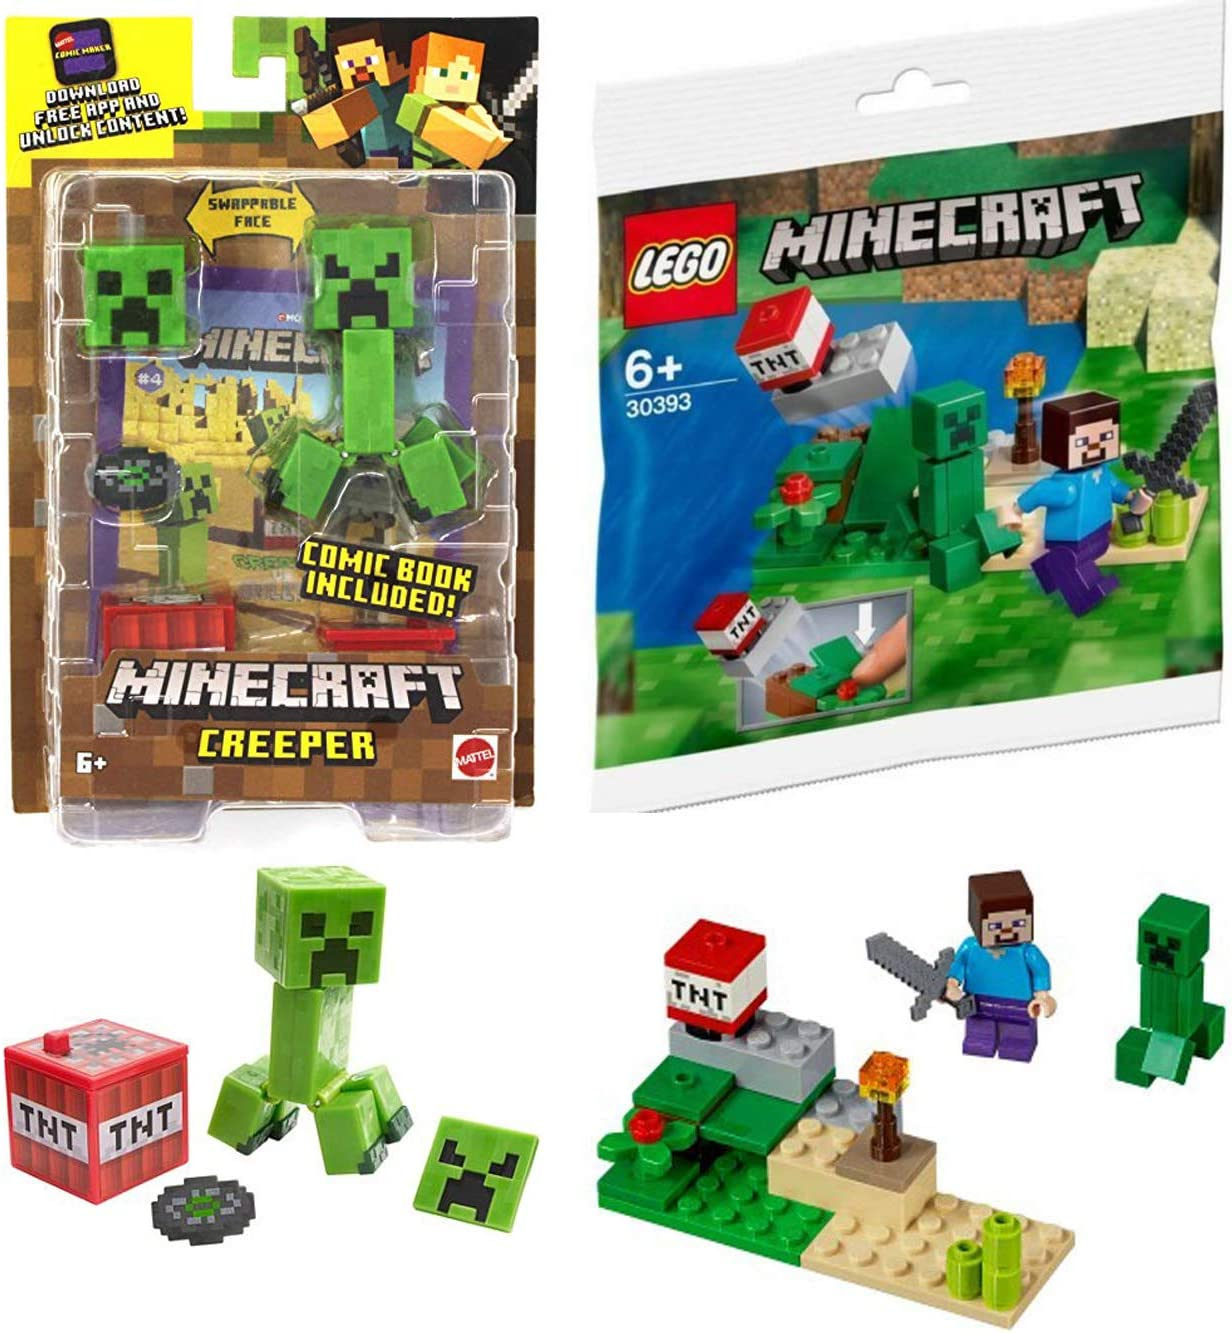 Maker Creeper Compatible with Minecraft Mini Player Set 30393 Steve Bundled with Adventure Mini Comic Book TNT Game Creator 2-Items Mine & Dig in